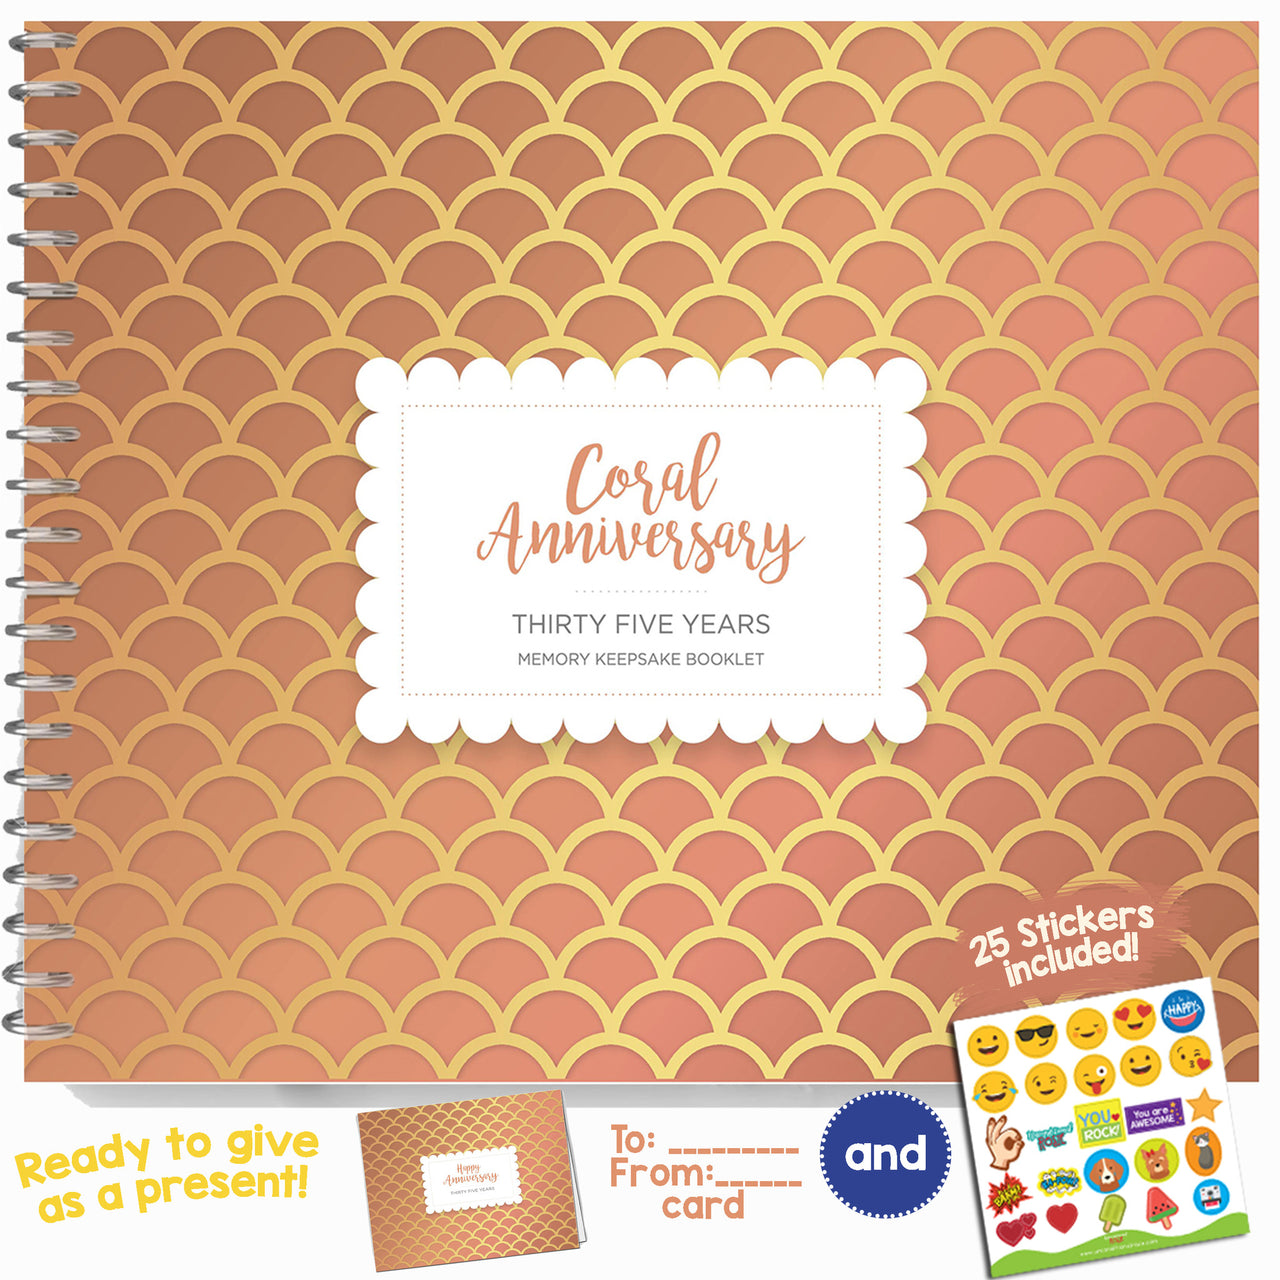 Booklet with Matching Card for Coral Anniversary